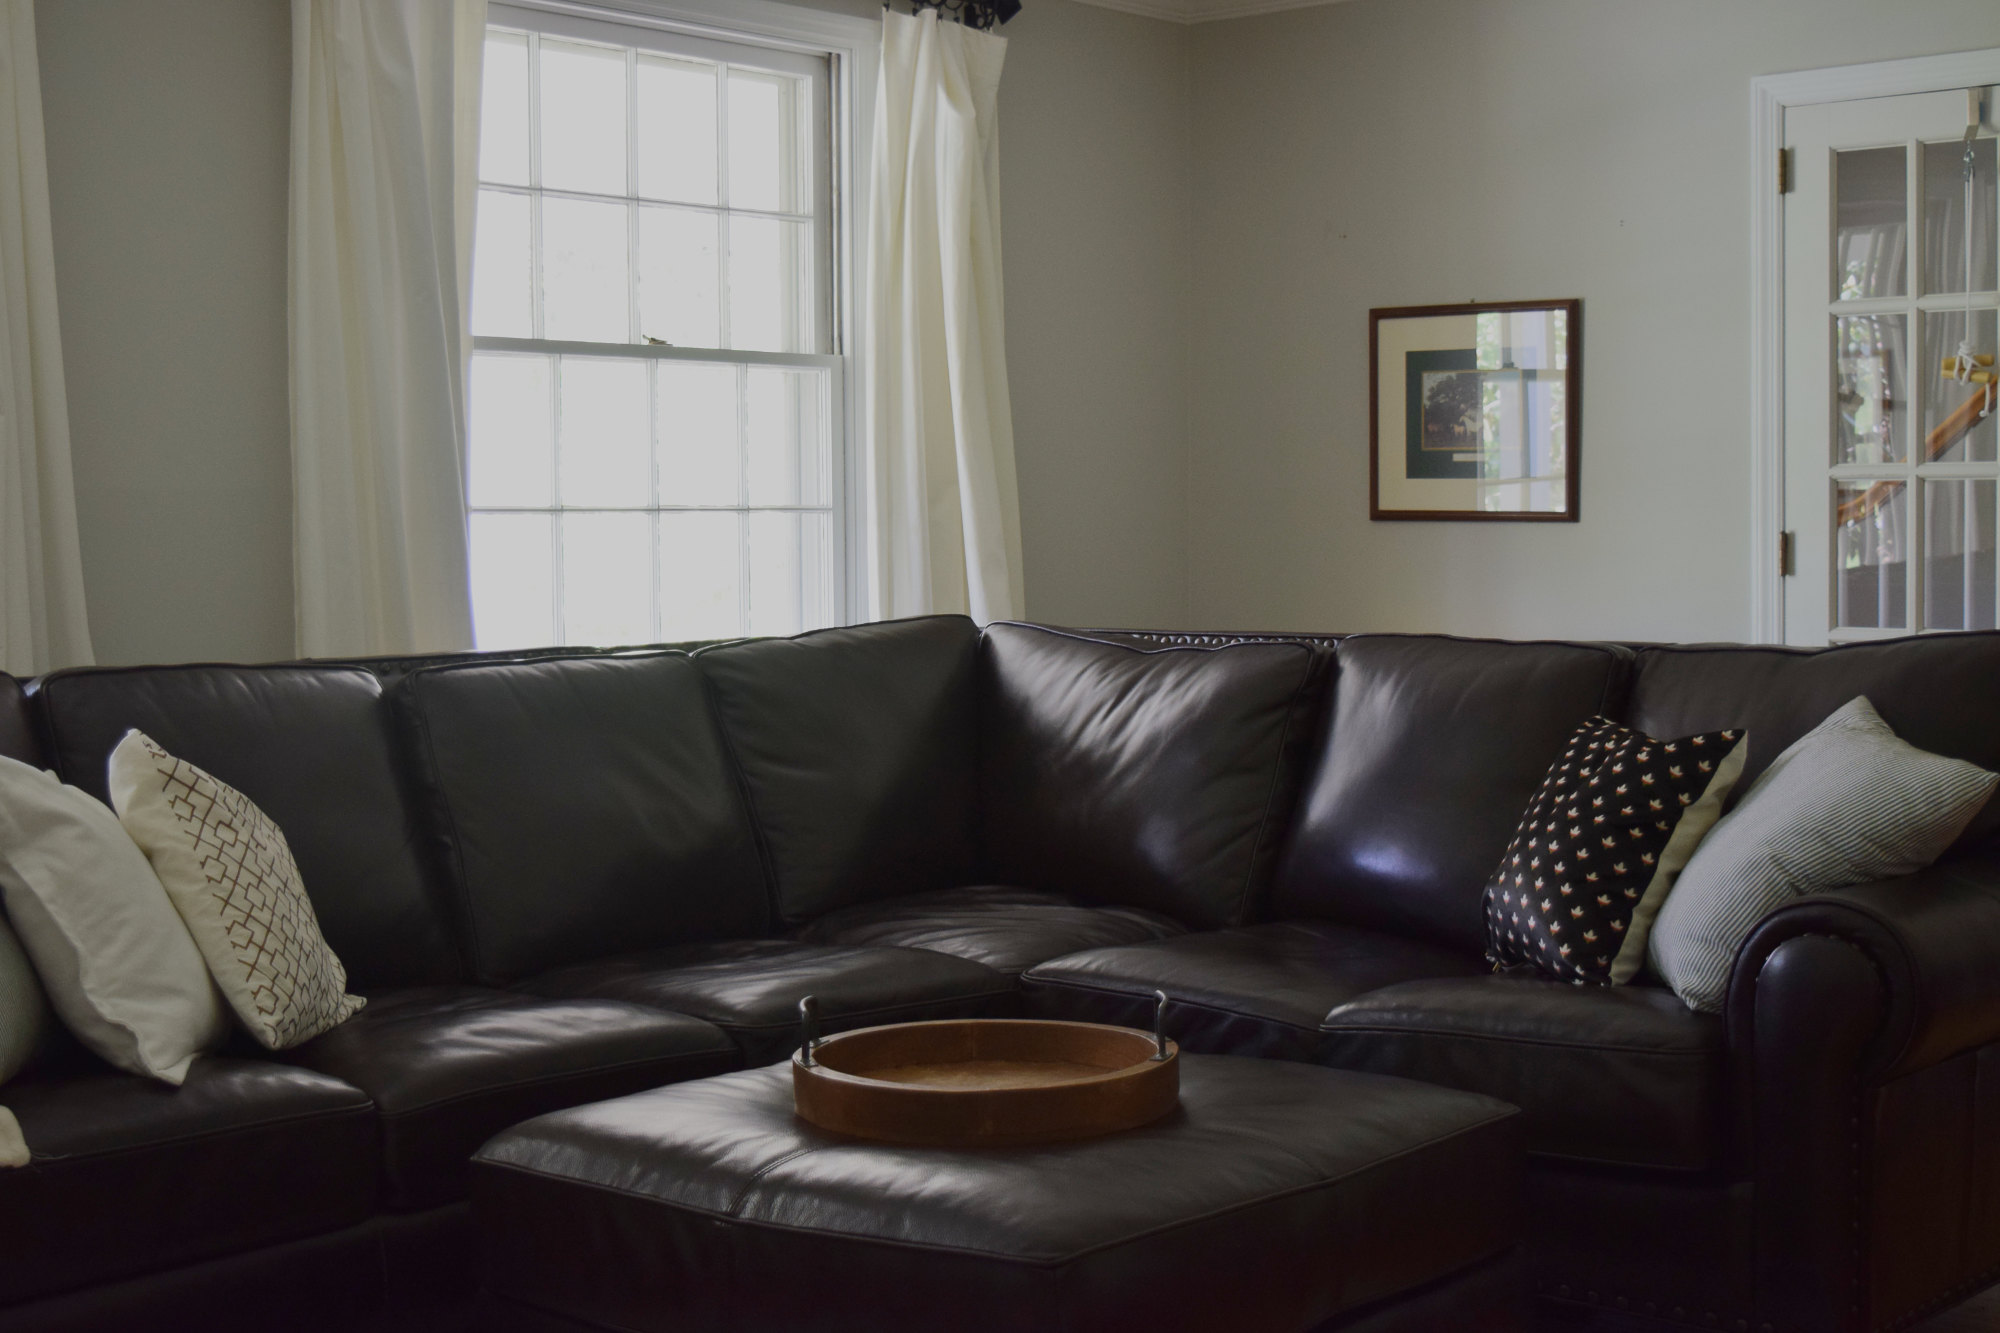 dark brown leather sectional with tray and white curtains motif motif pillow in living room